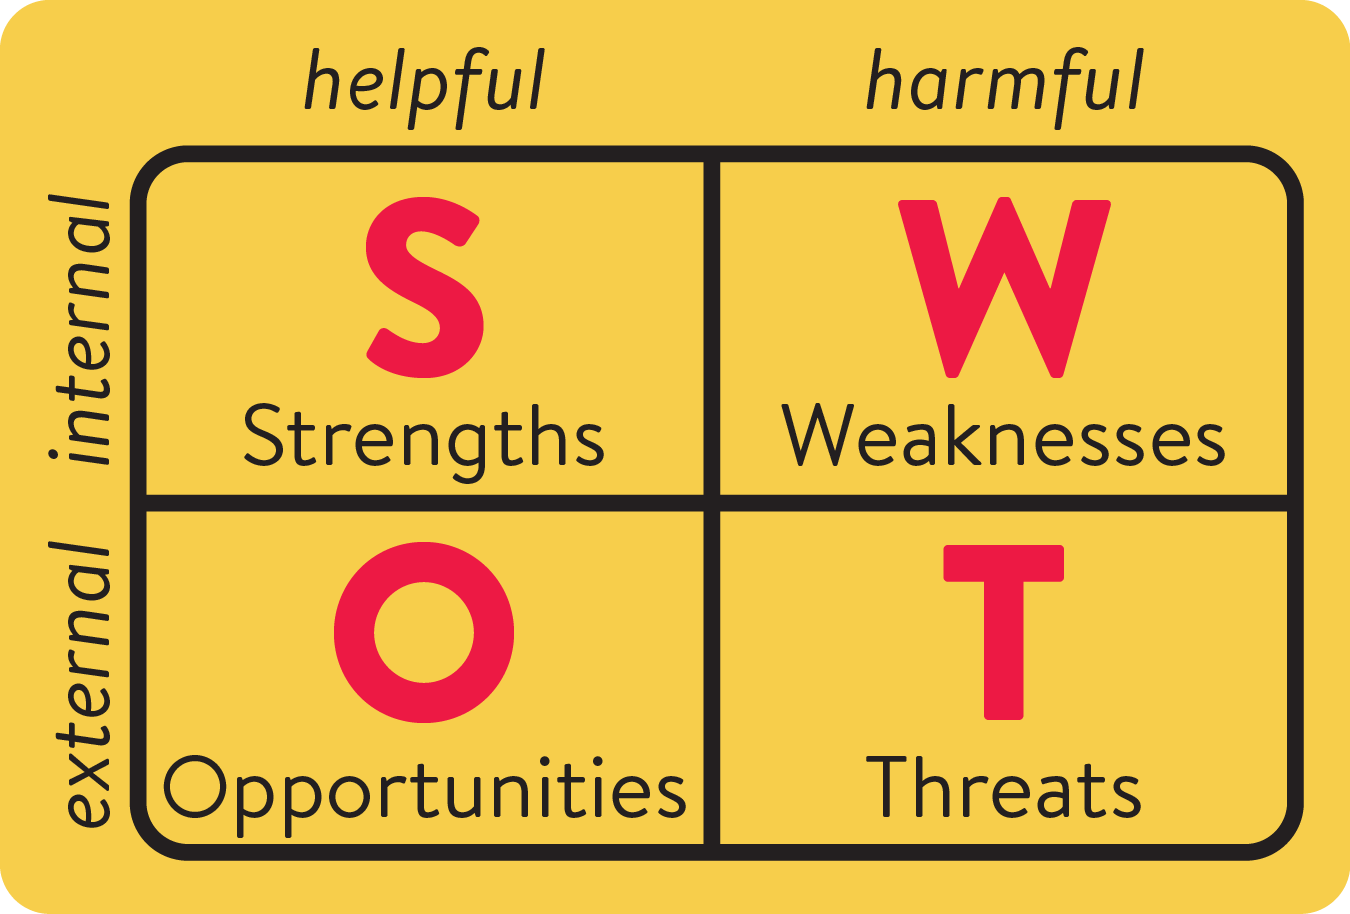 SWOT Analysis matrix: Strengths, Weaknesses, Opportunities, Threats